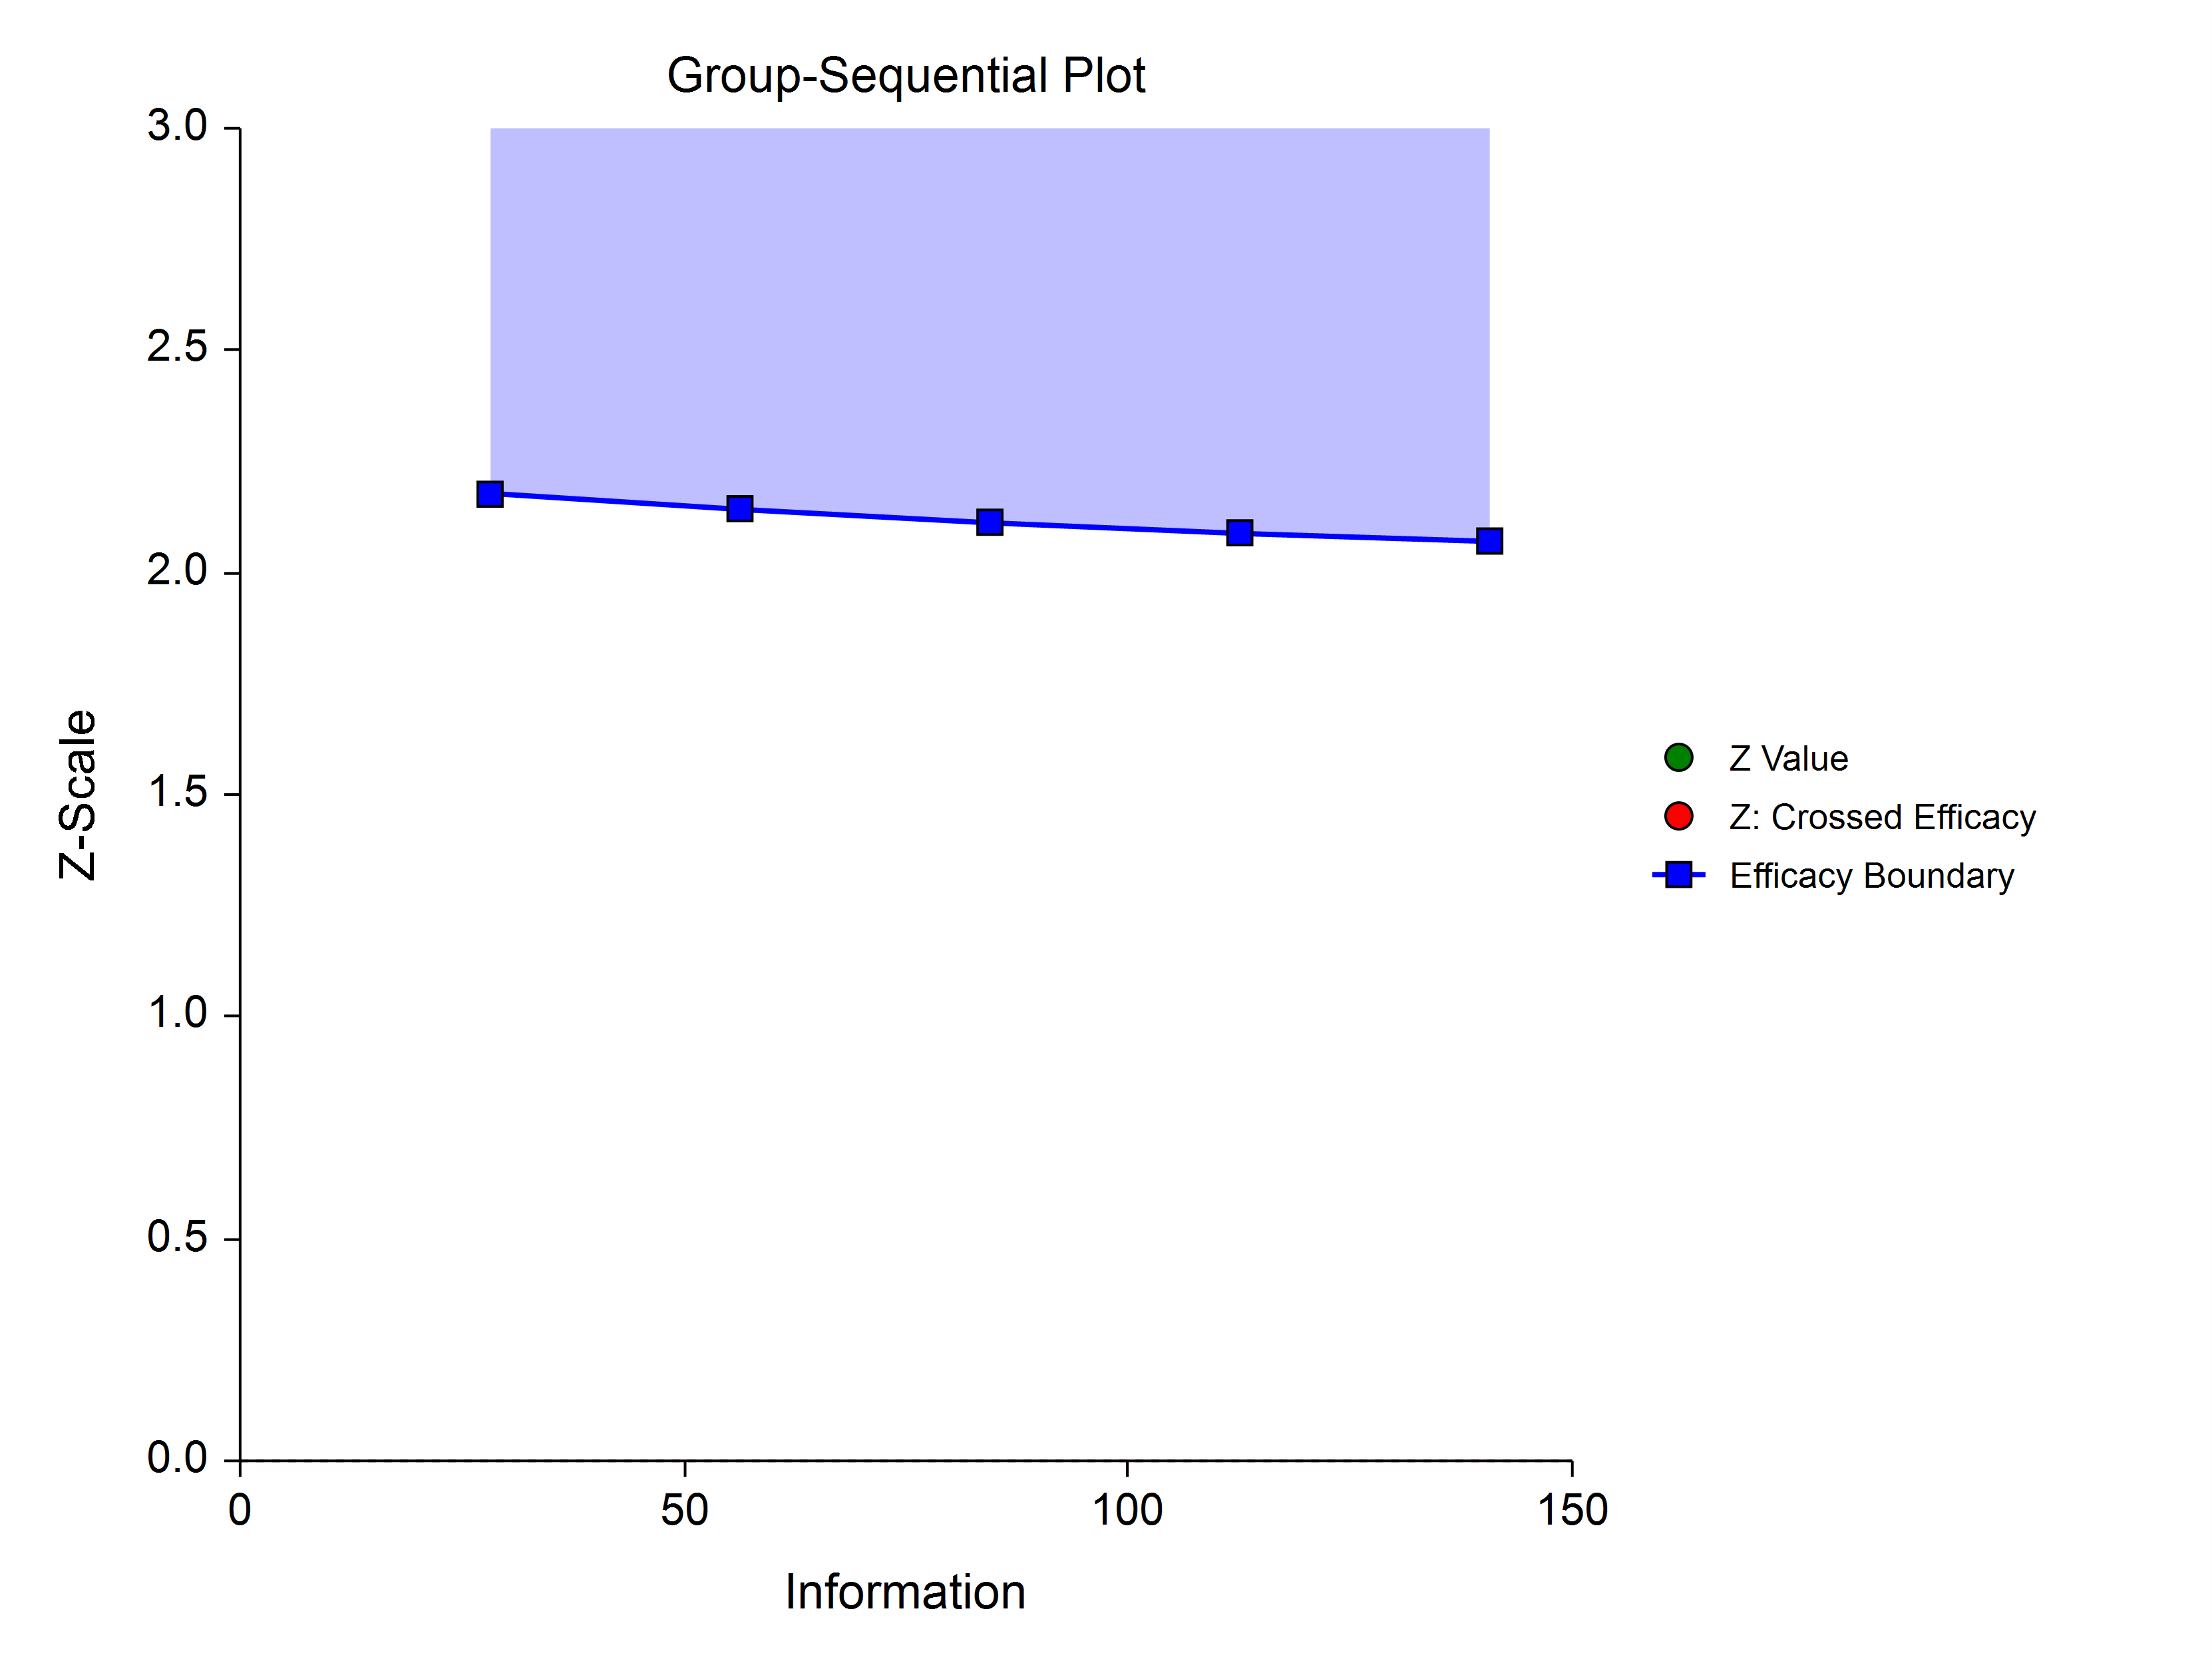 Group-Sequential Pocock Analog Spending Function